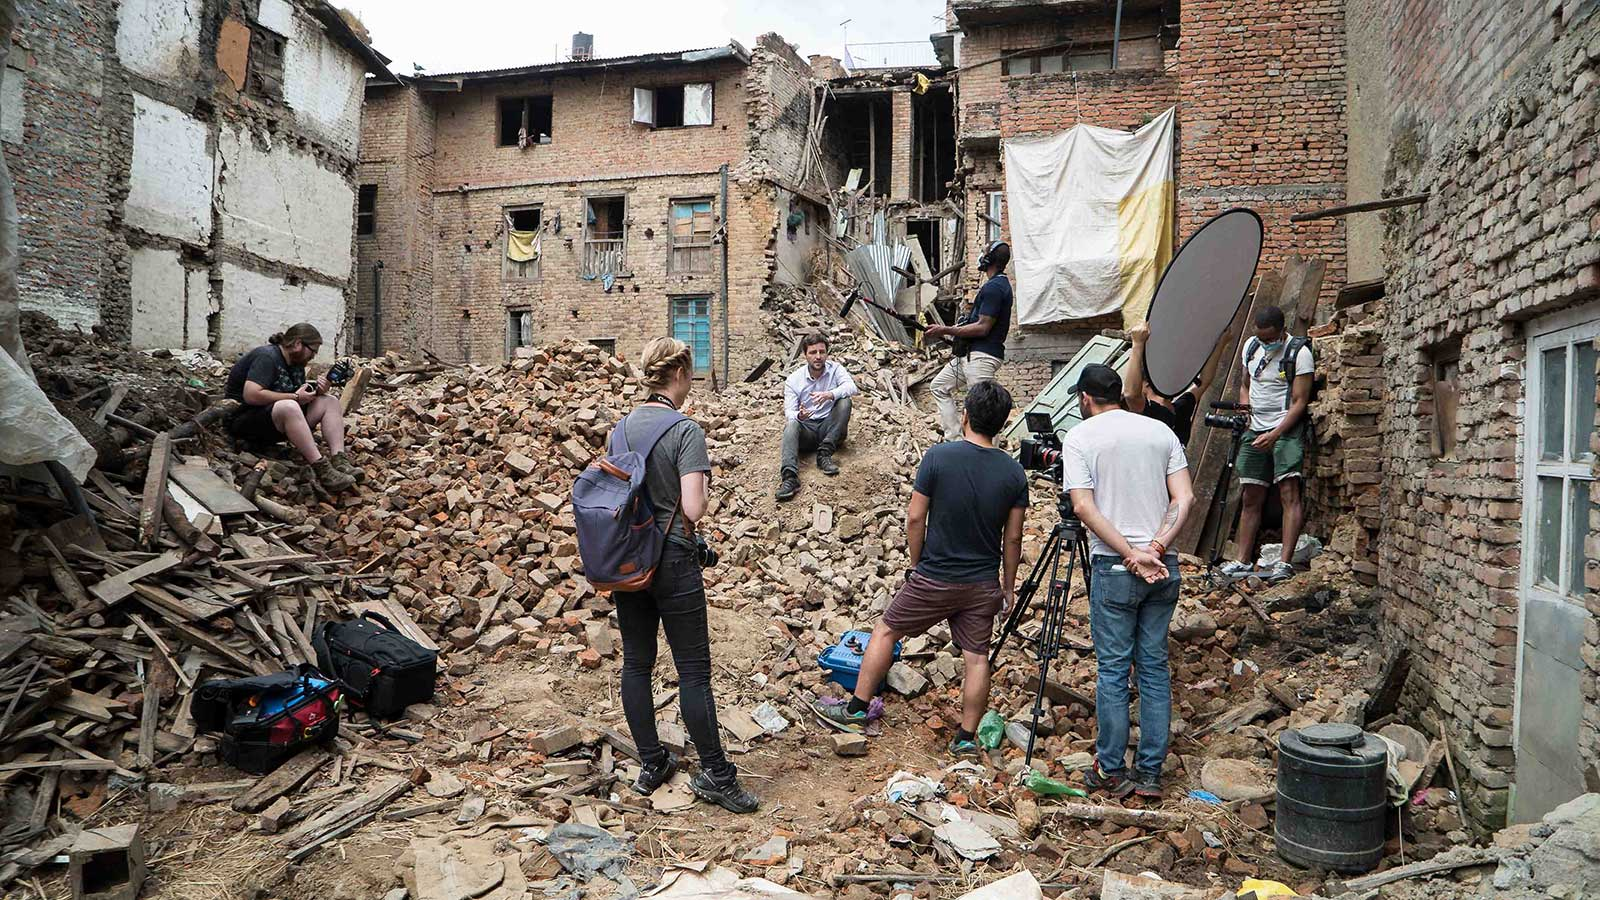 Interview in the streets of Nepal after the earthquake